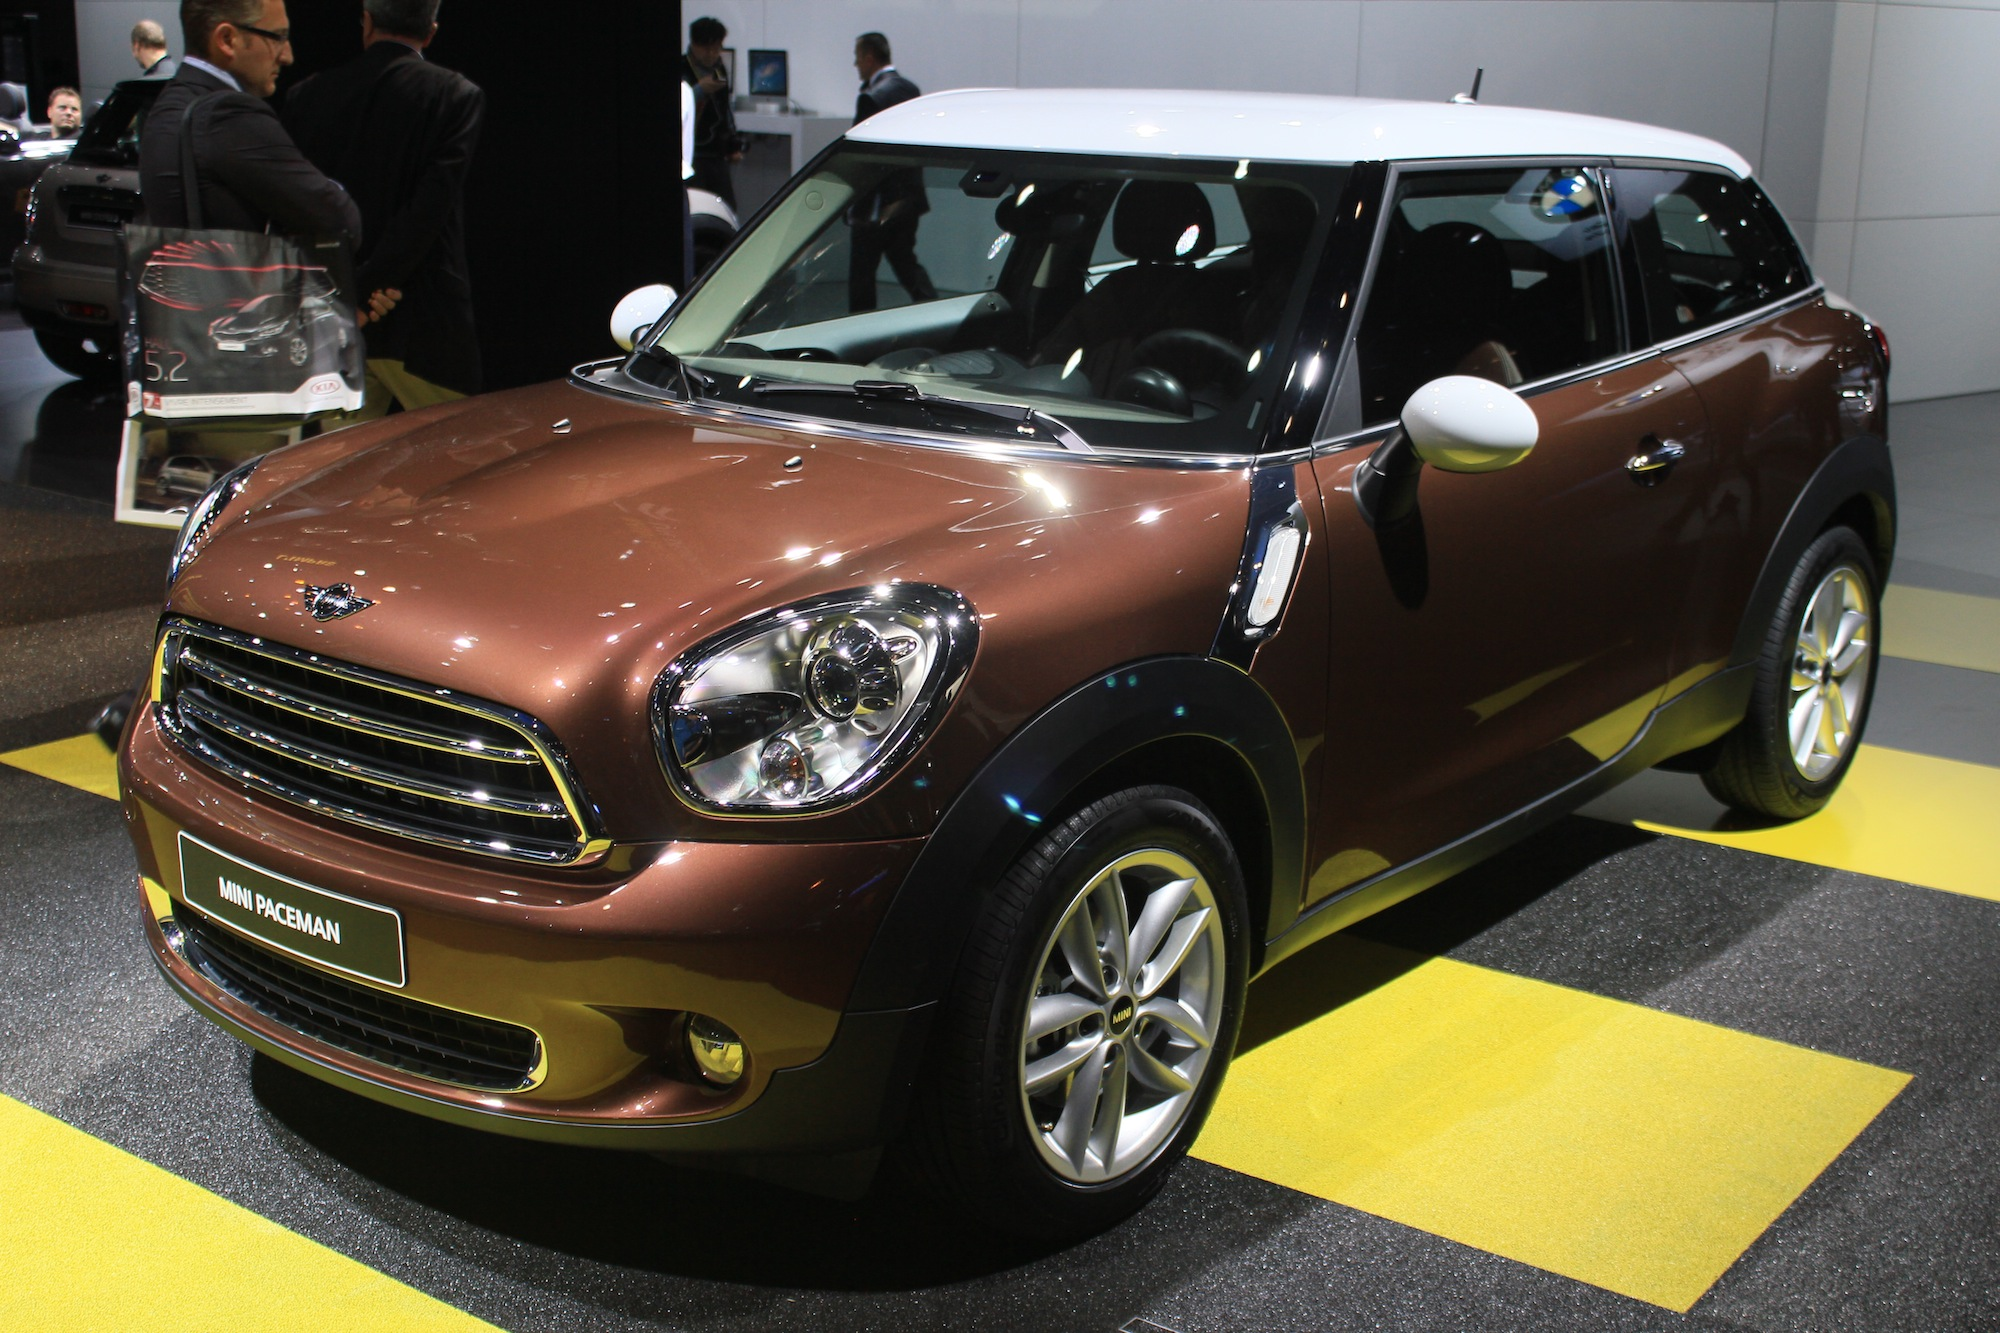 Mini Cooper Dallas >> 2013 MINI Cooper Paceman Review, Ratings, Specs, Prices, and Photos - The Car Connection